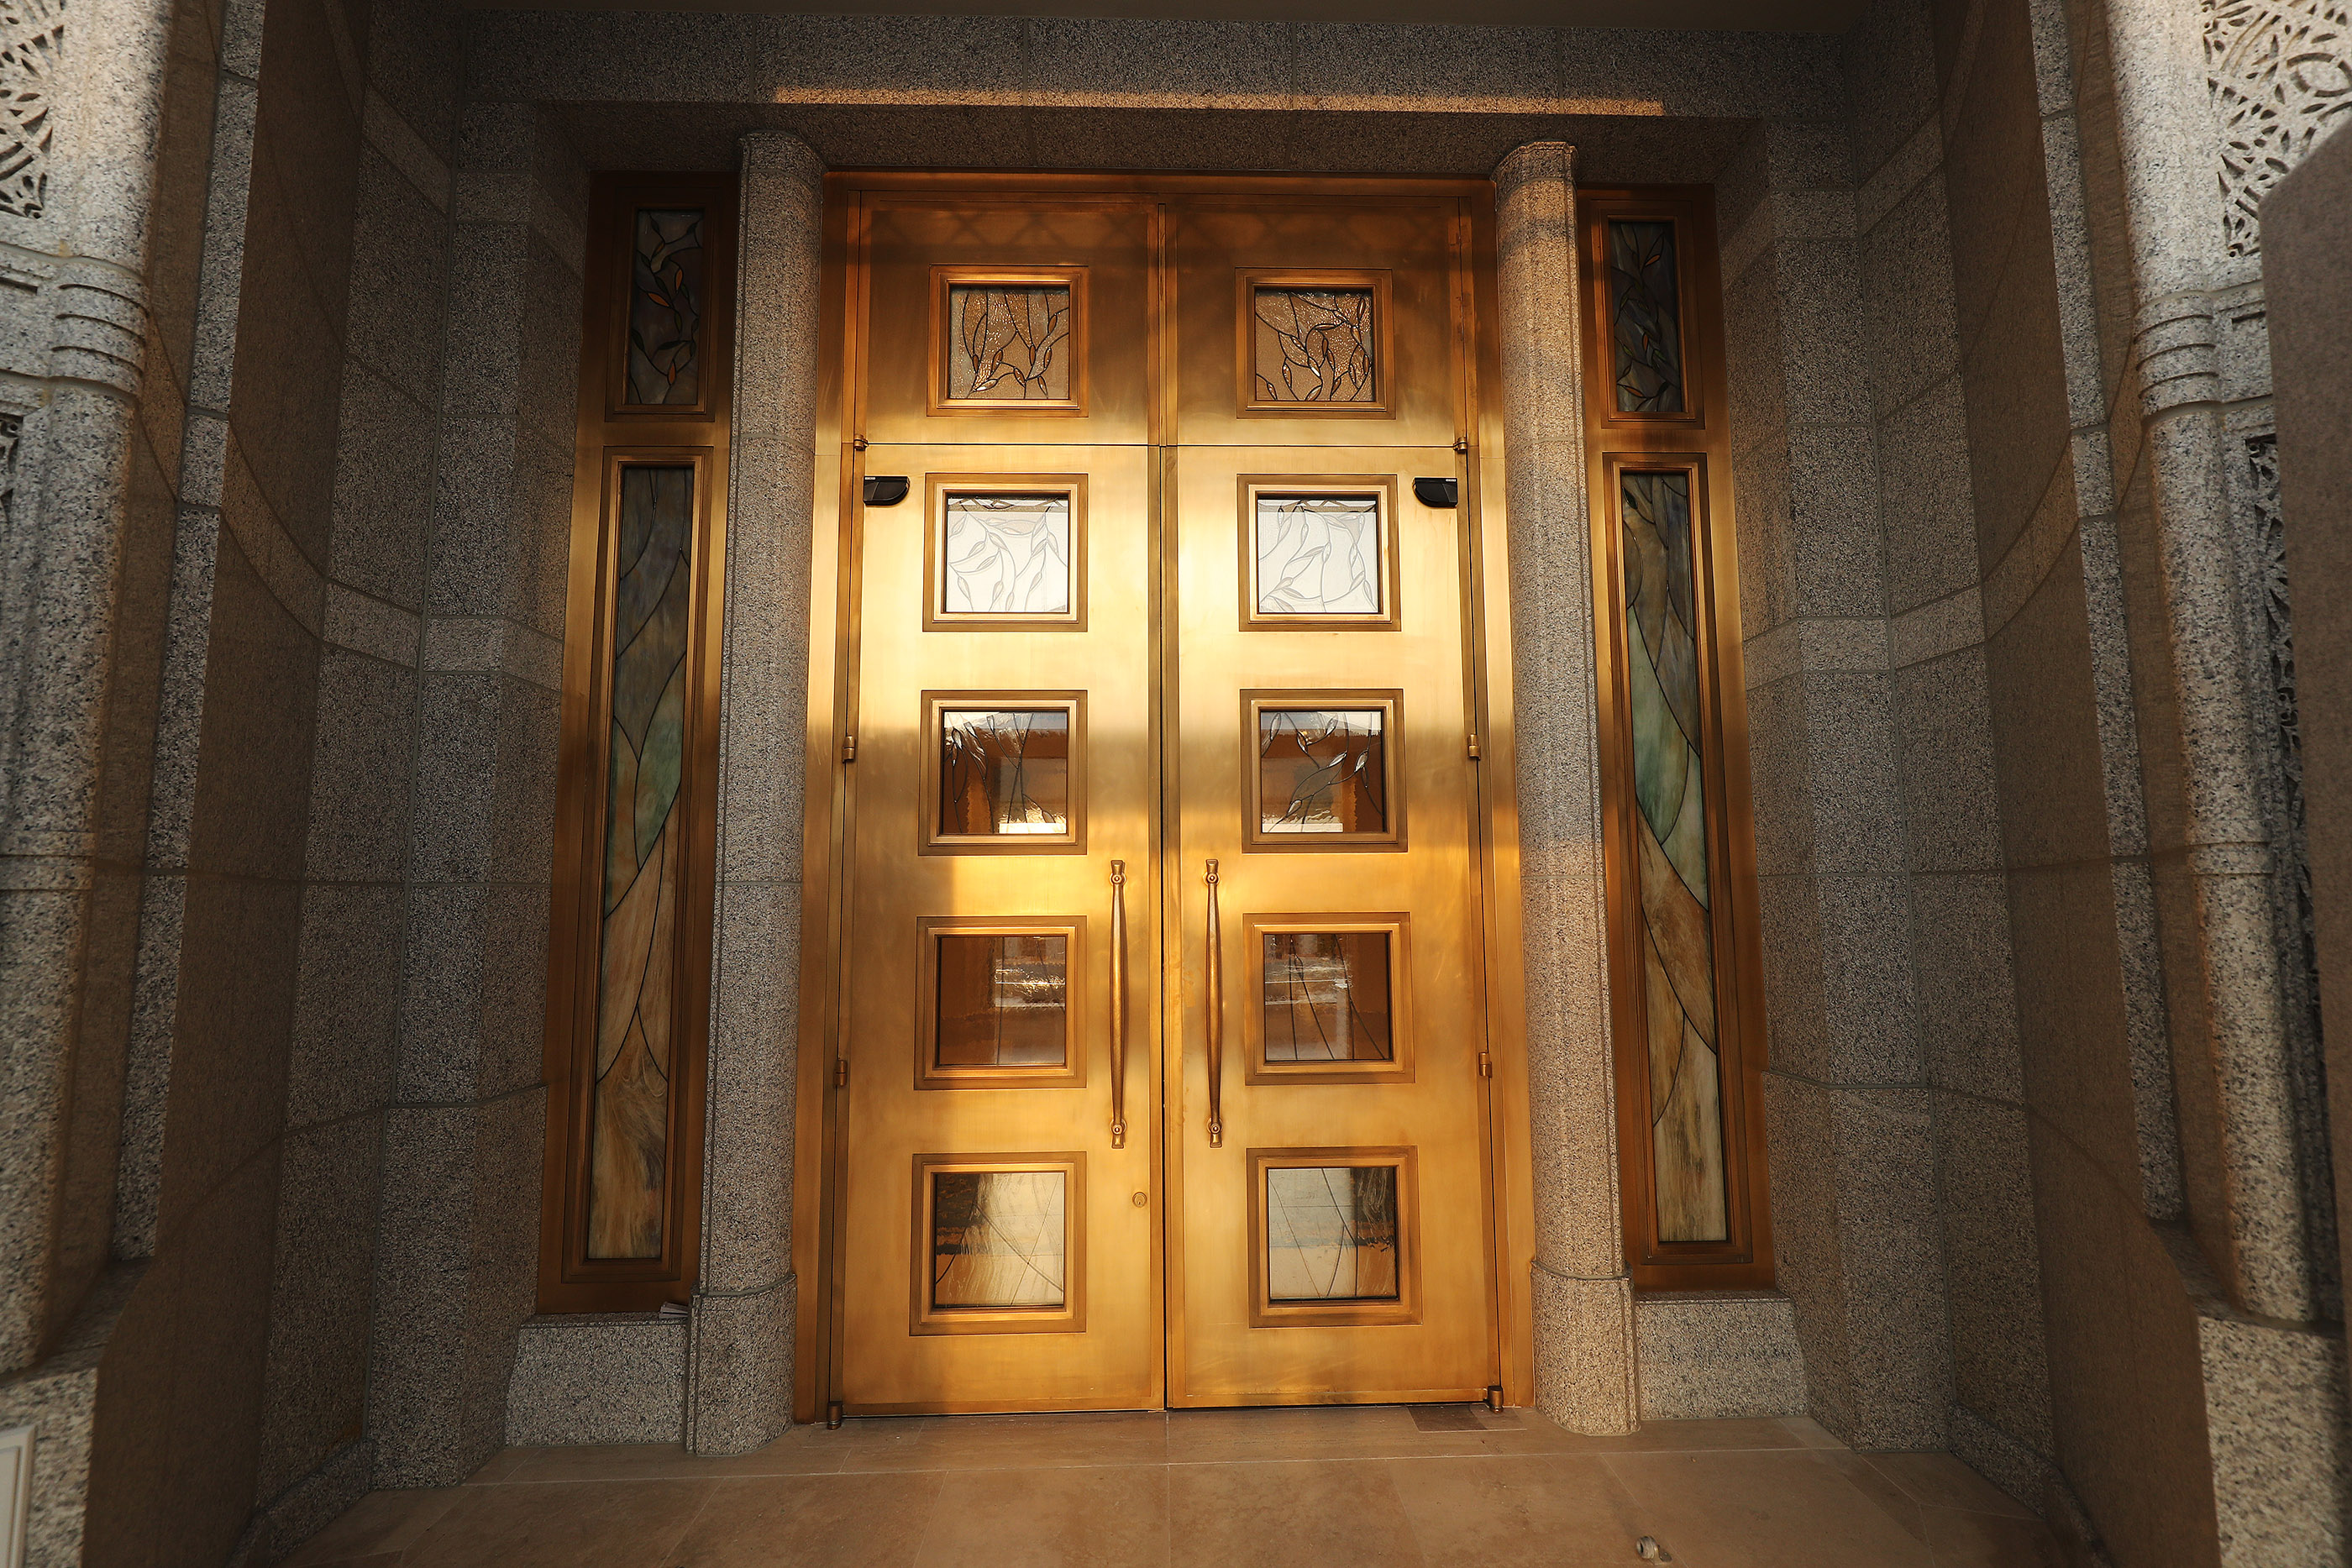 The front doors to the Rome Italy Temple of The Church of Jesus Christ of Latter-day Saints in Rome, Italy, on Friday, March 8, 2019.